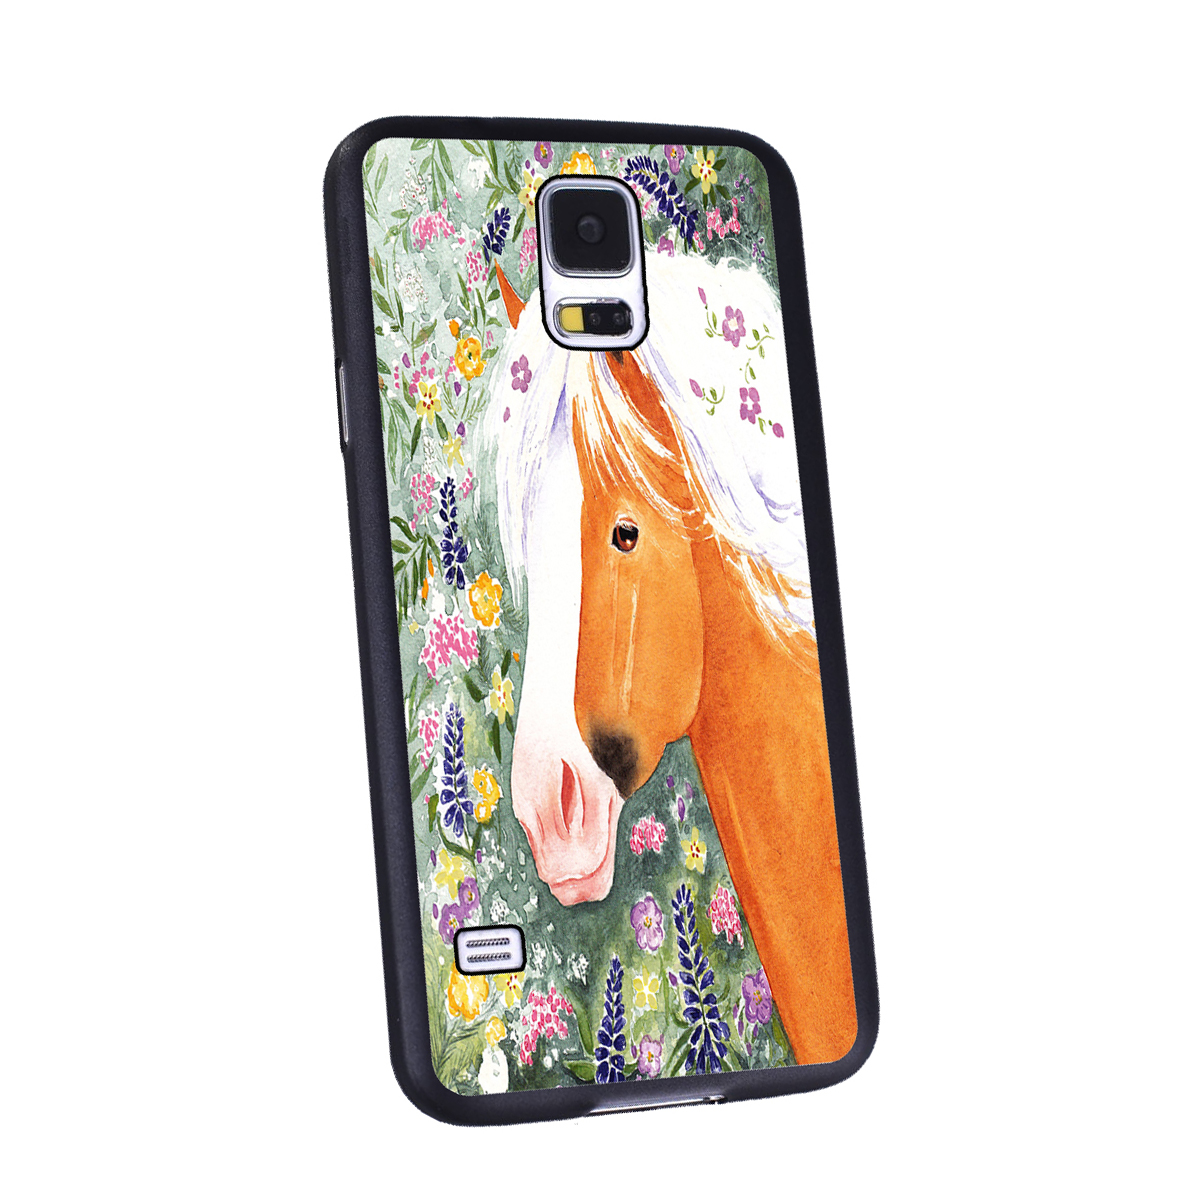 KuzmarK Samsung Galaxy S5 Black Cover Case - Palomino Welsh Pony with Welsh Wildflowers Horse Art by Denise Every